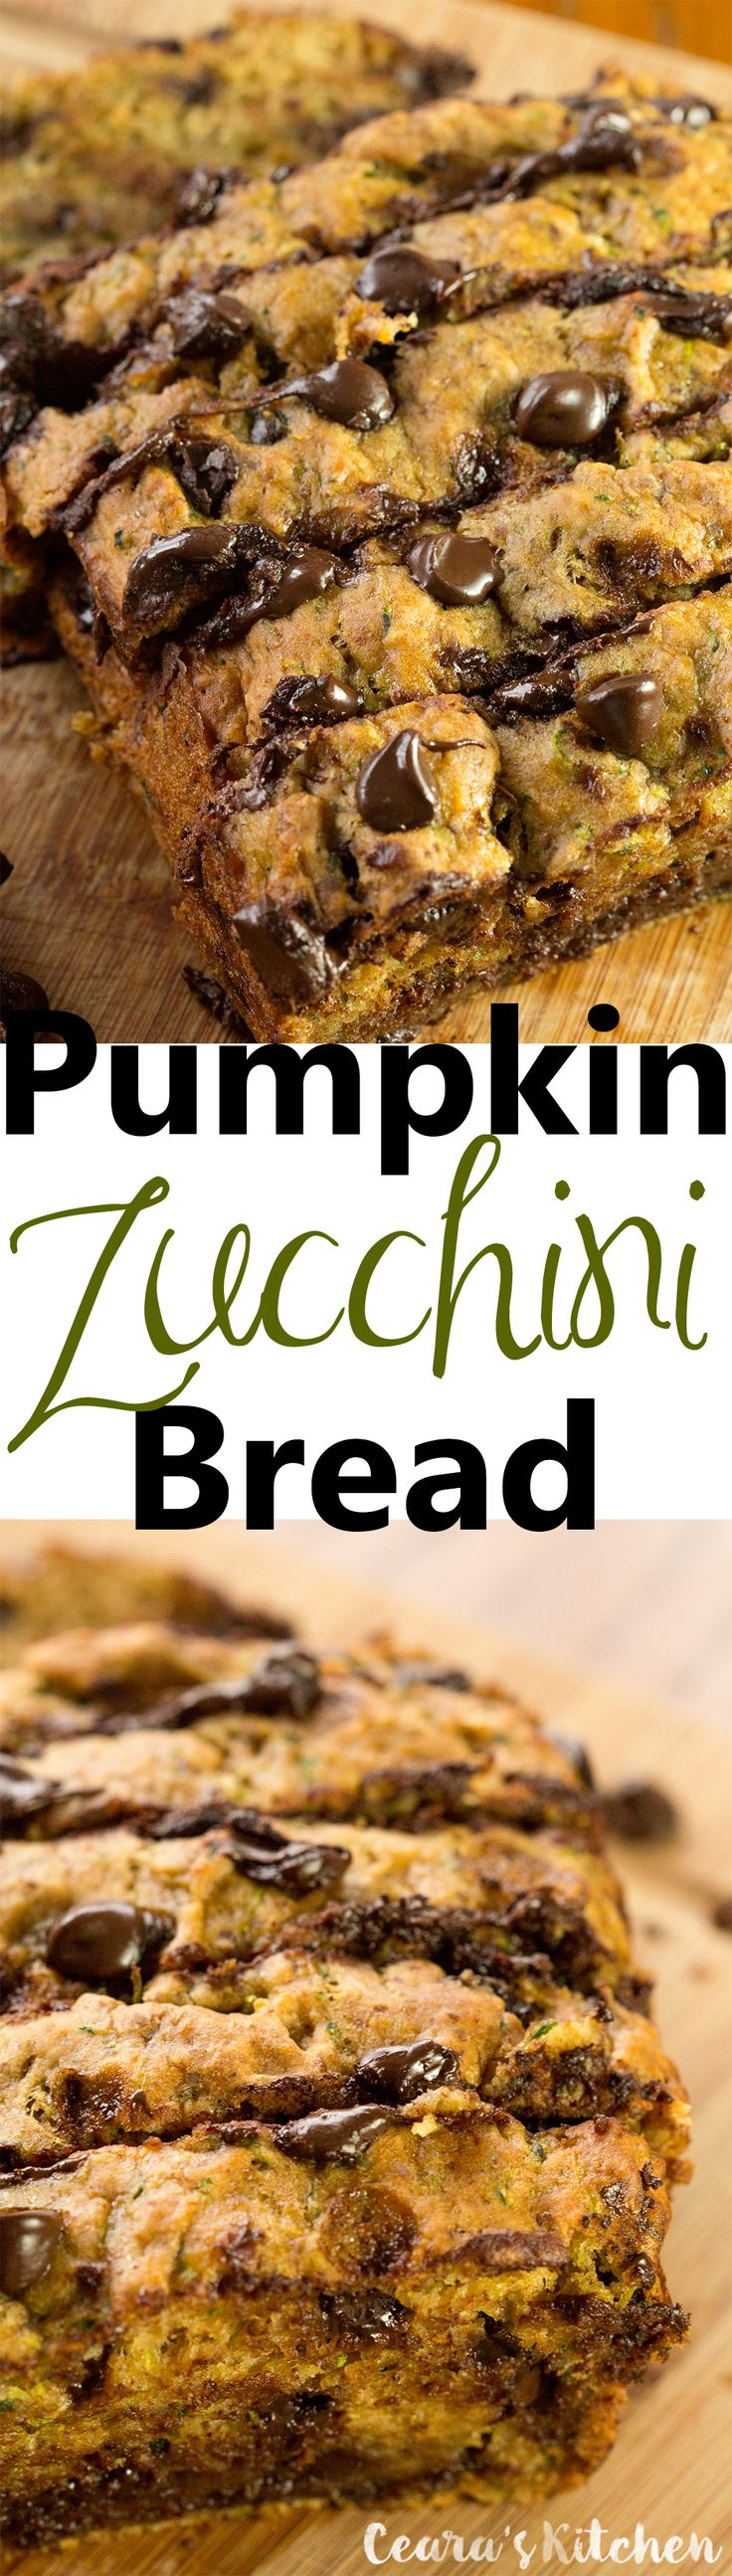 Vegan Healthy Chocolate Chip Pumpkin Bread-make with or w/o the choc chips and it's OIL FREE!